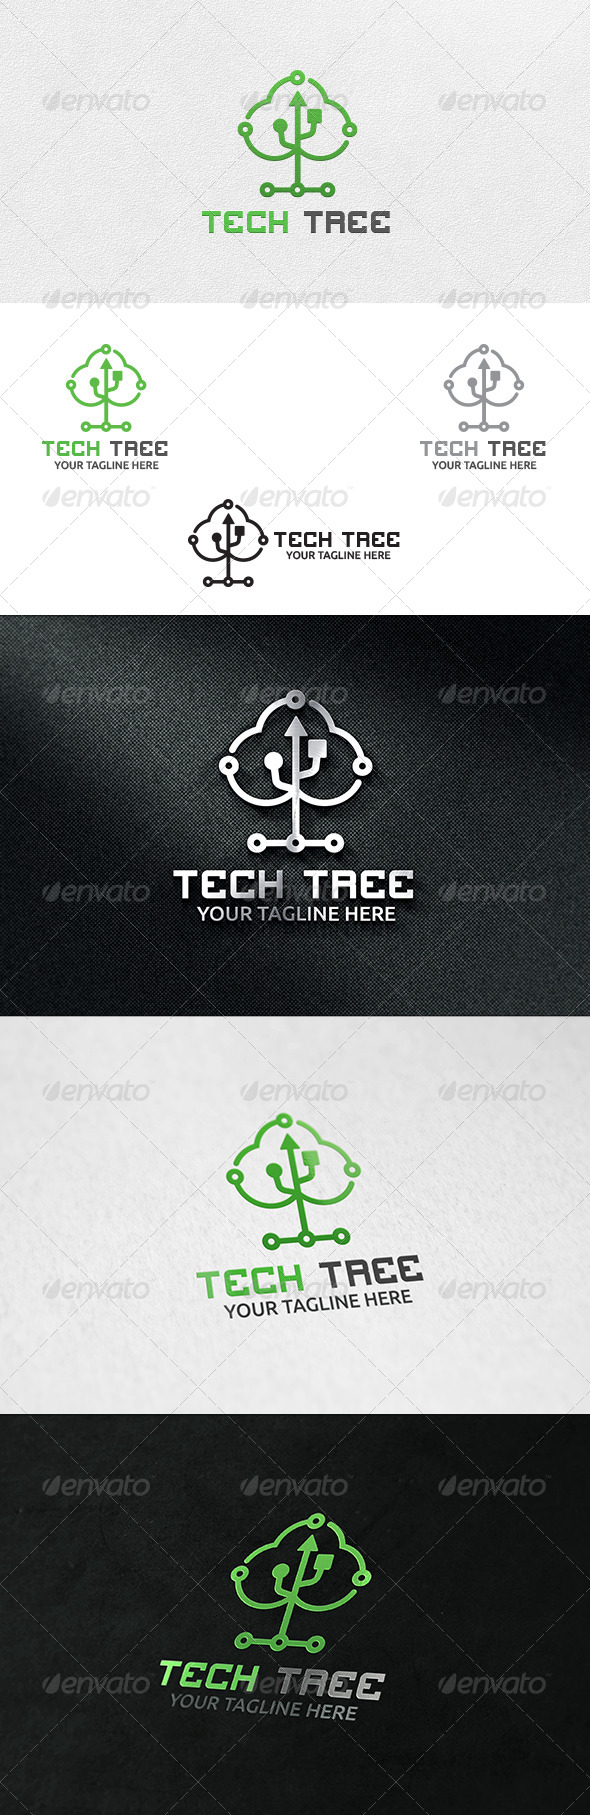 Tech Tree - Logo Template - Symbols Logo Templates